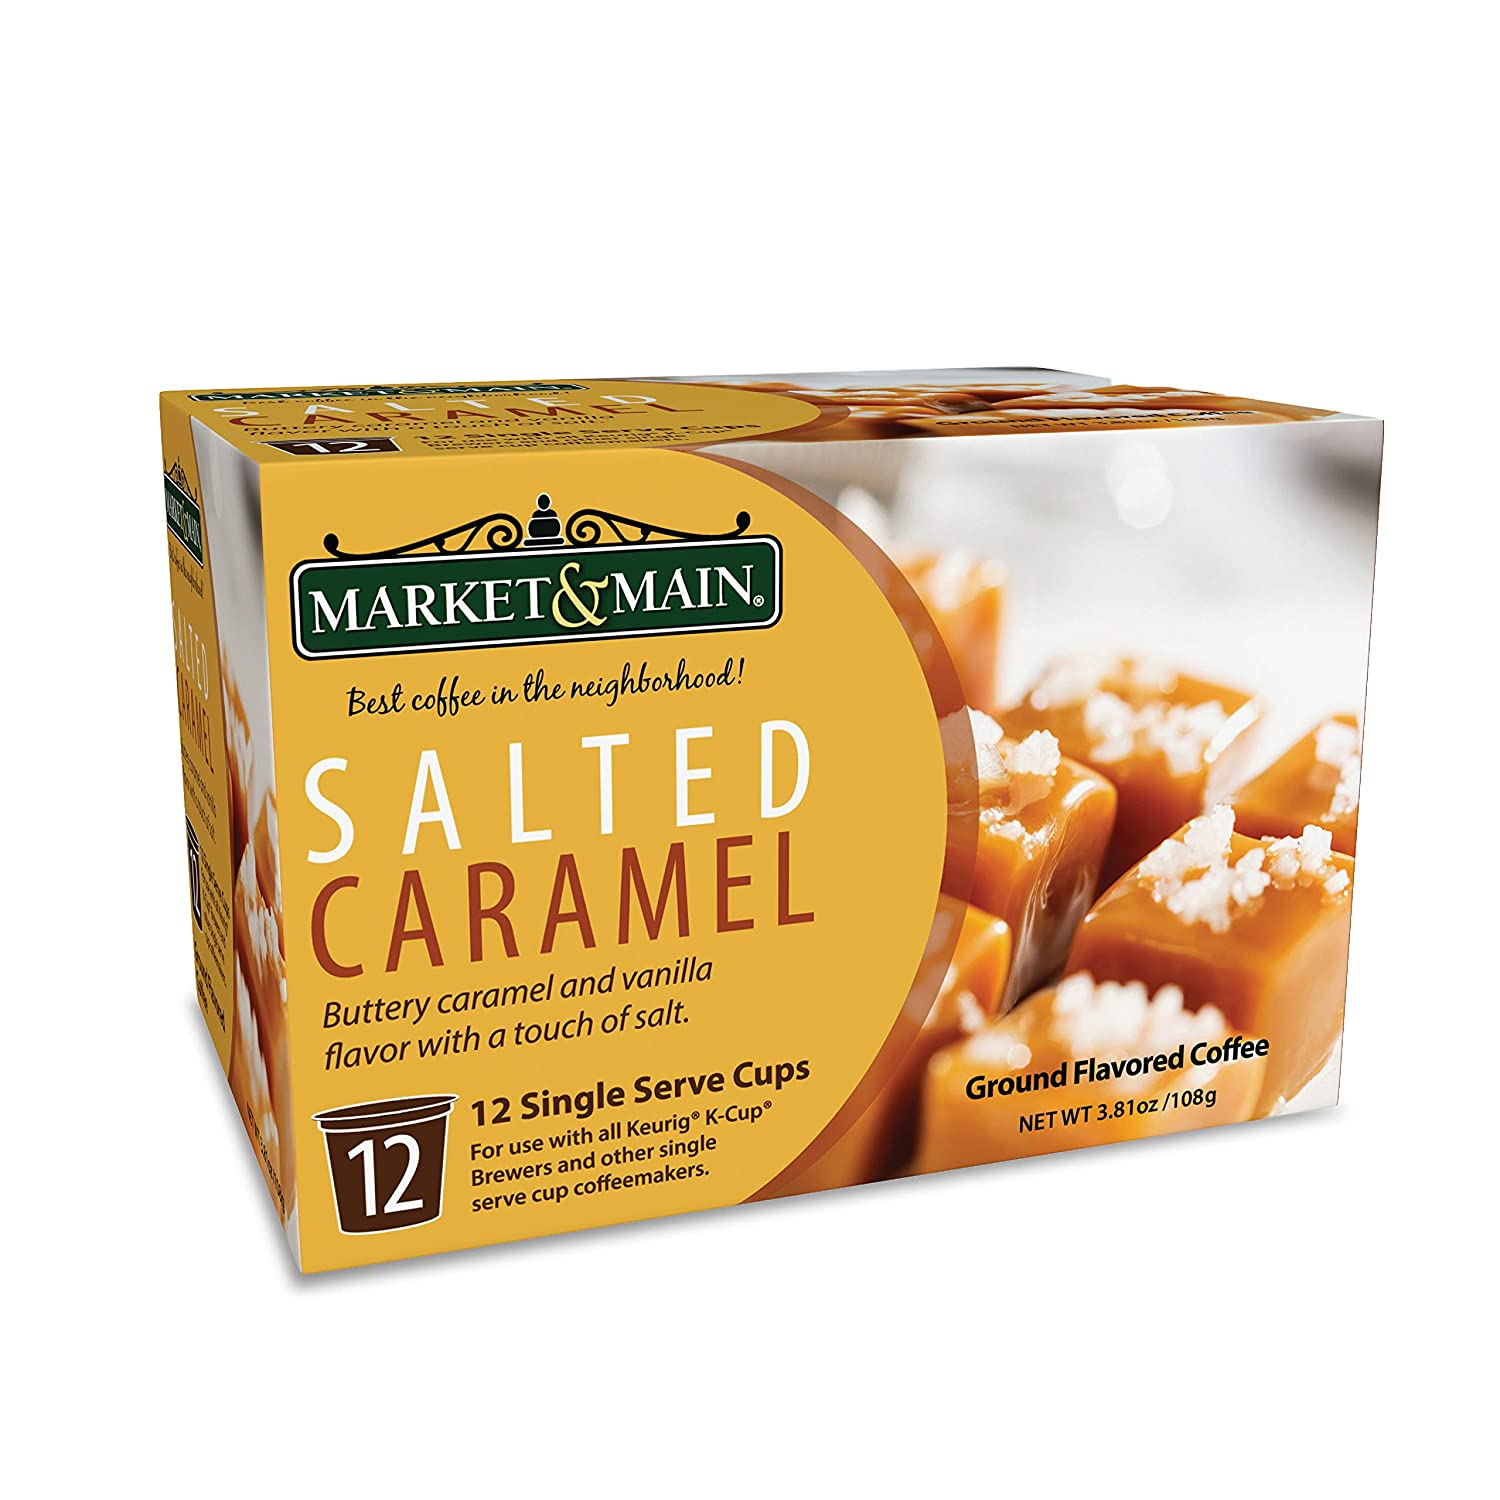 Market & Main OneCup, Salted Caramel, Compatible with Keurig K-cup Brewers, 12 Count